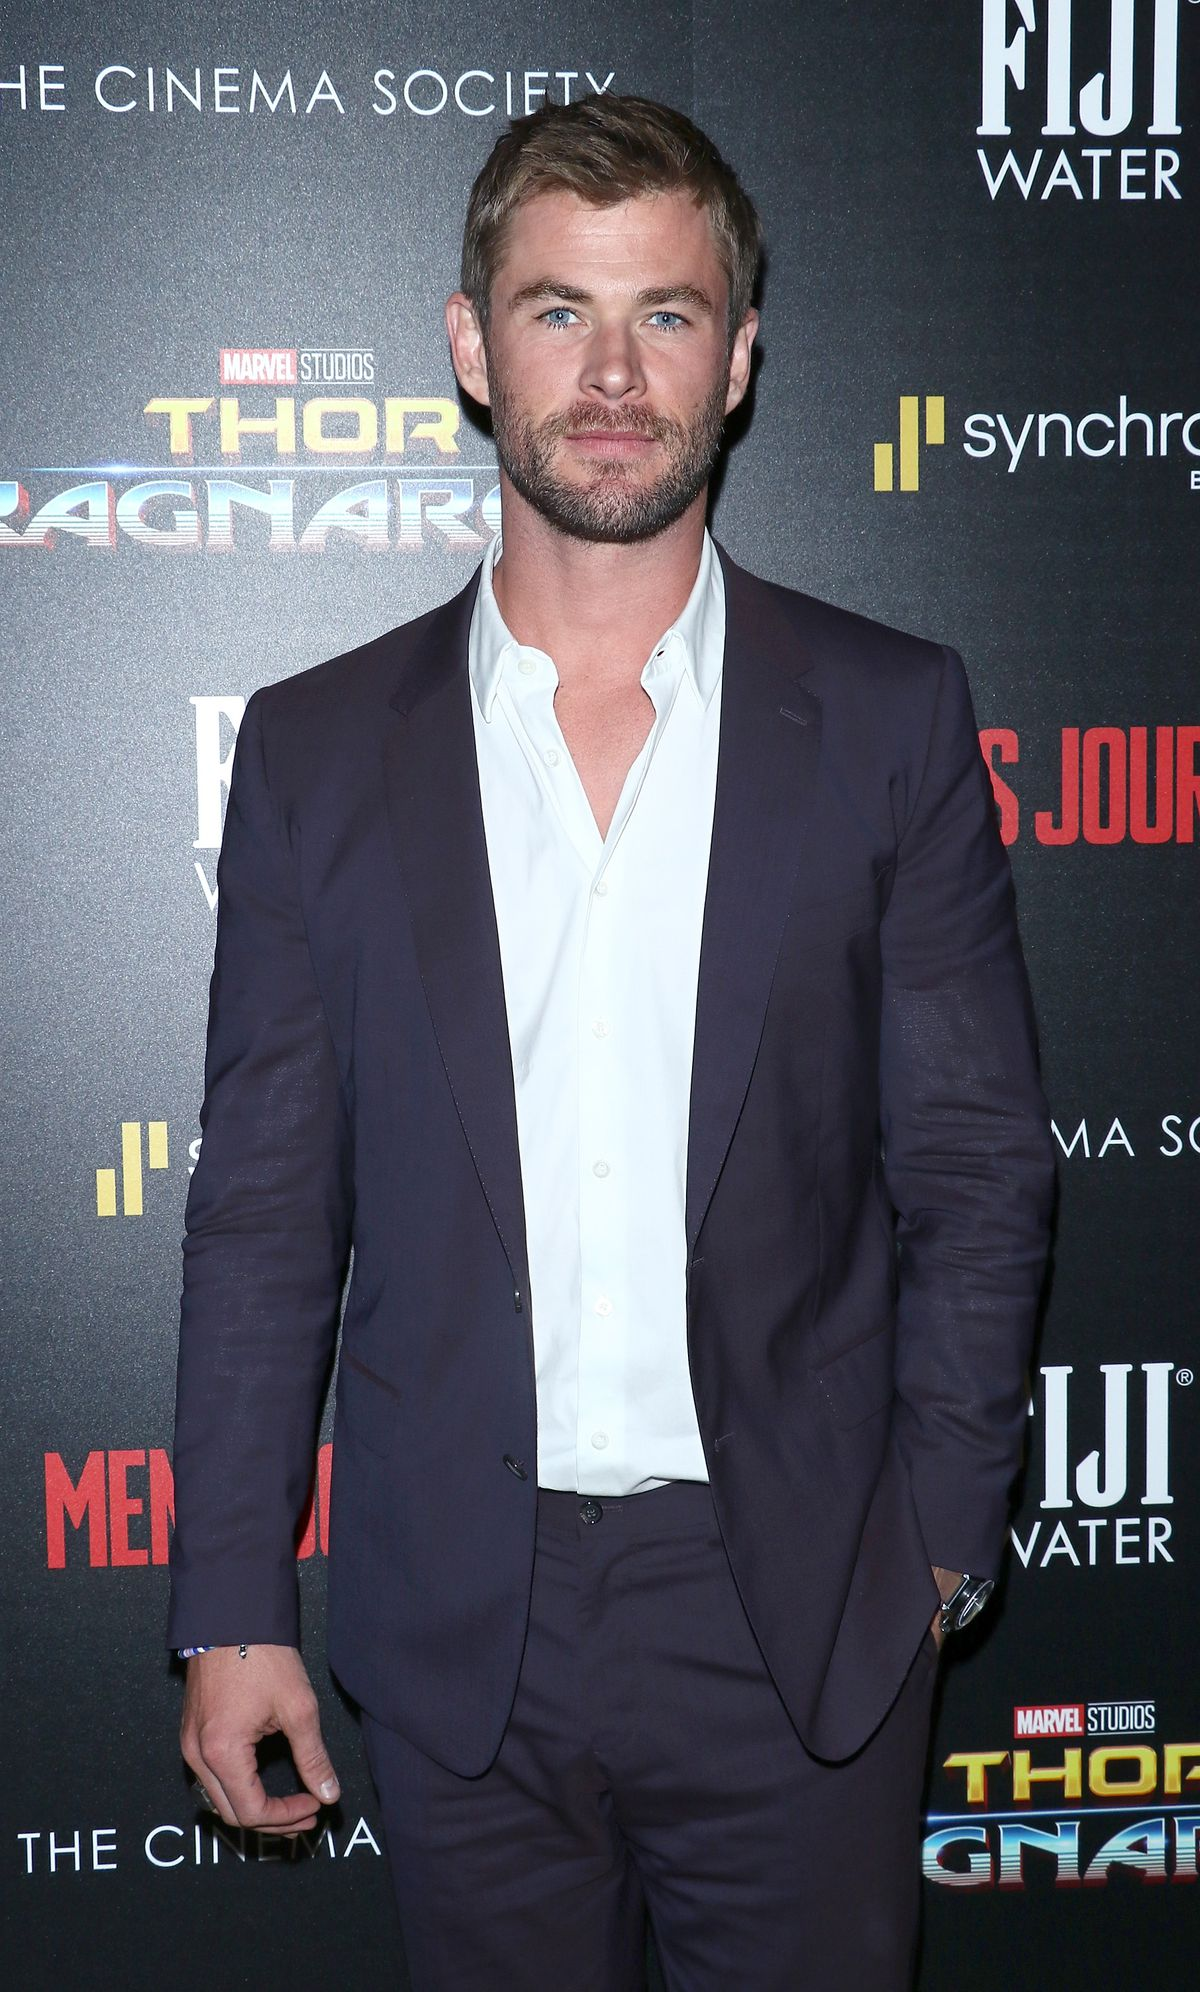 """The Cinema Society With FIJI Water, Men's Journal And Synchrony Host A Screening Of Marvel Studios' """"Thor: Ragnarok"""" - Arrivals"""